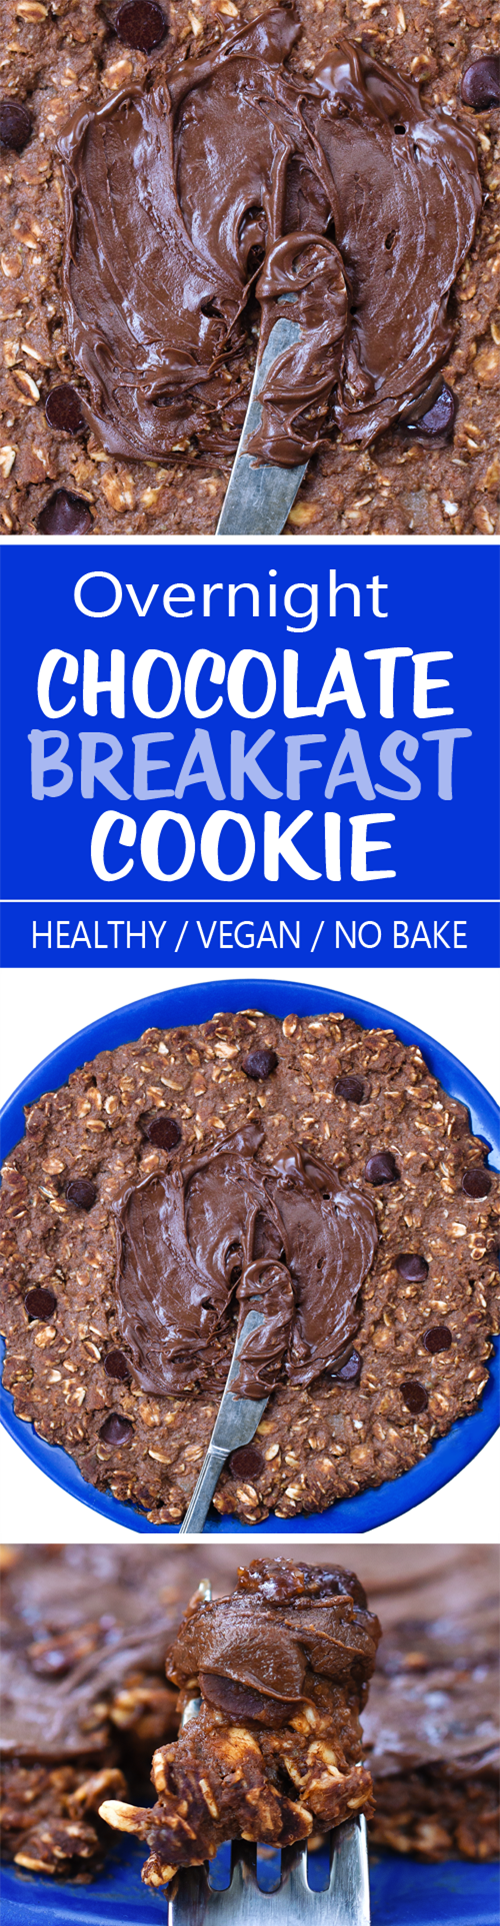 "A chocolate ""no bake"" overnight breakfast cookie that is ready whenever you want it!"